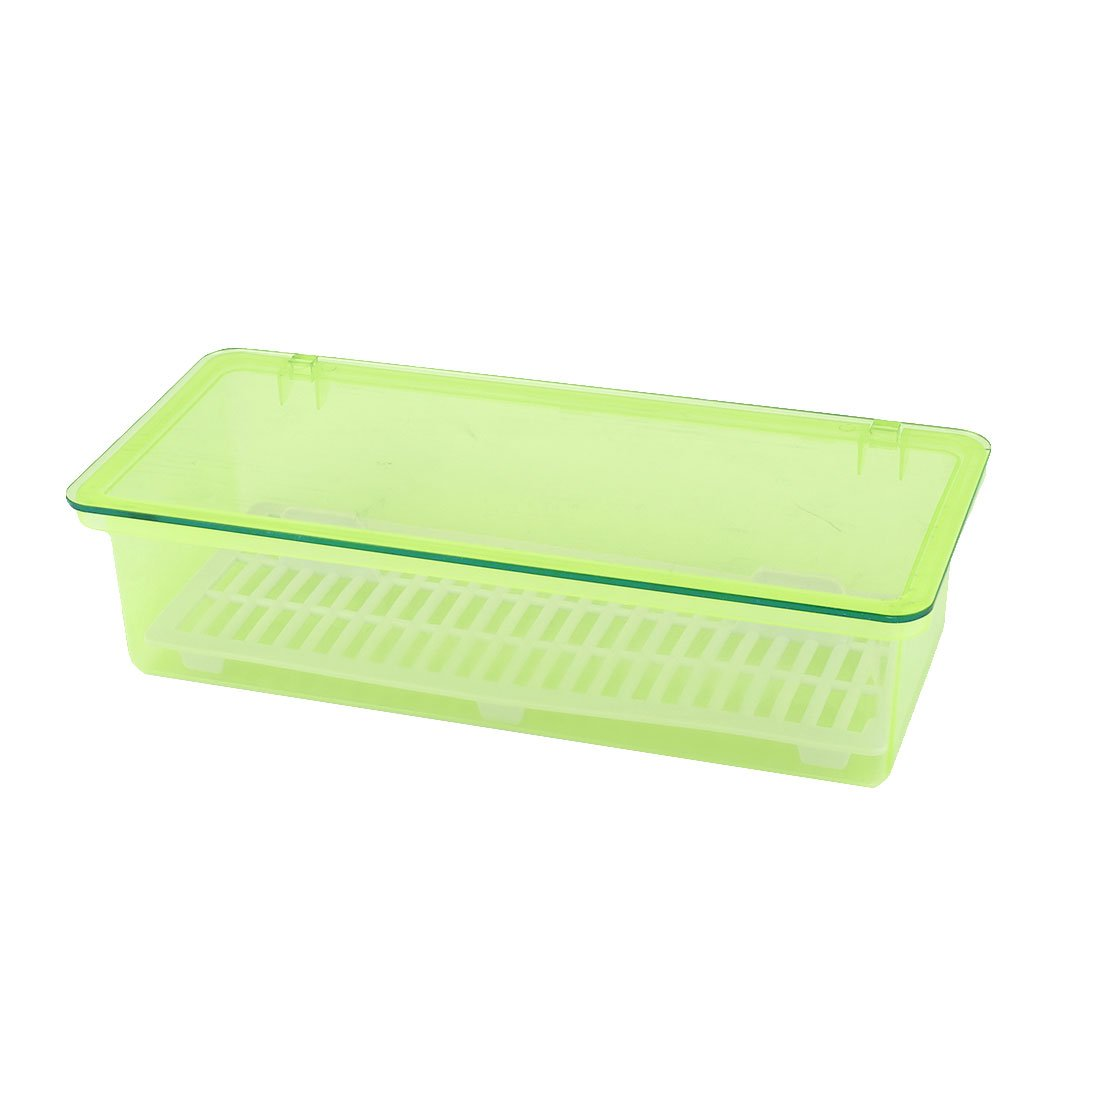 uxcell Plastic Household Kitchen Tableware Chopsticks Storage Box Case Container Green